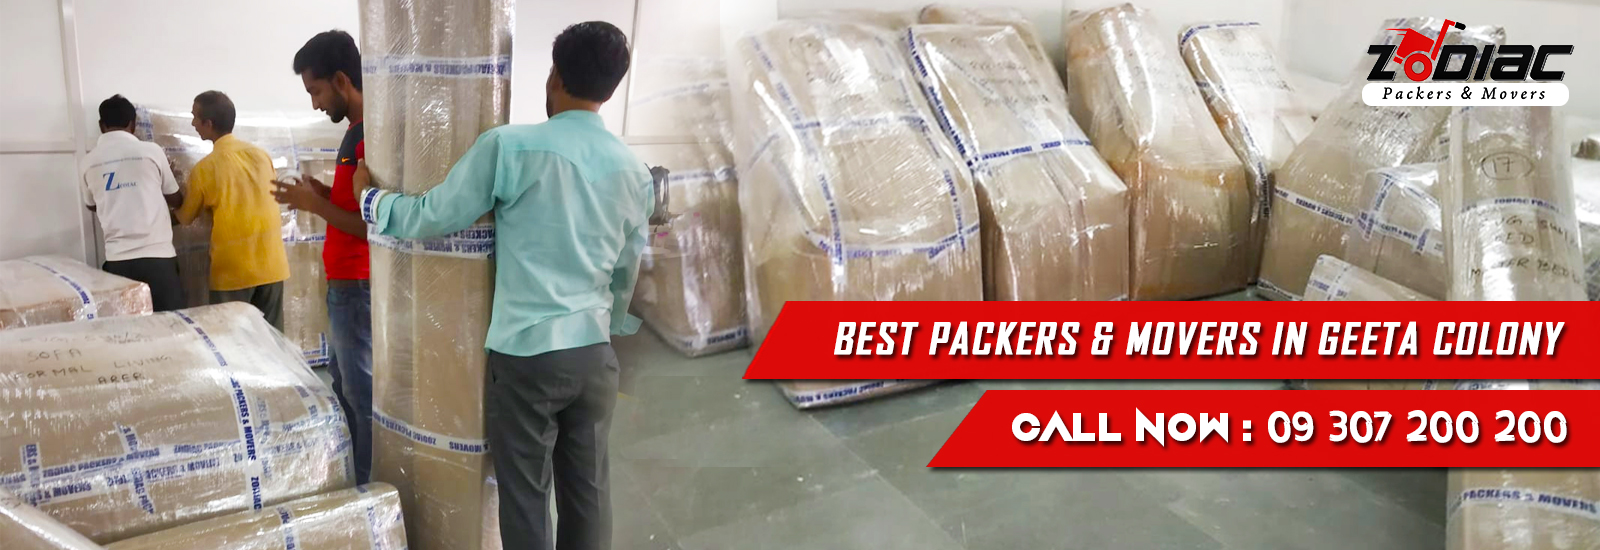 Packers and Movers in Geeta Colony